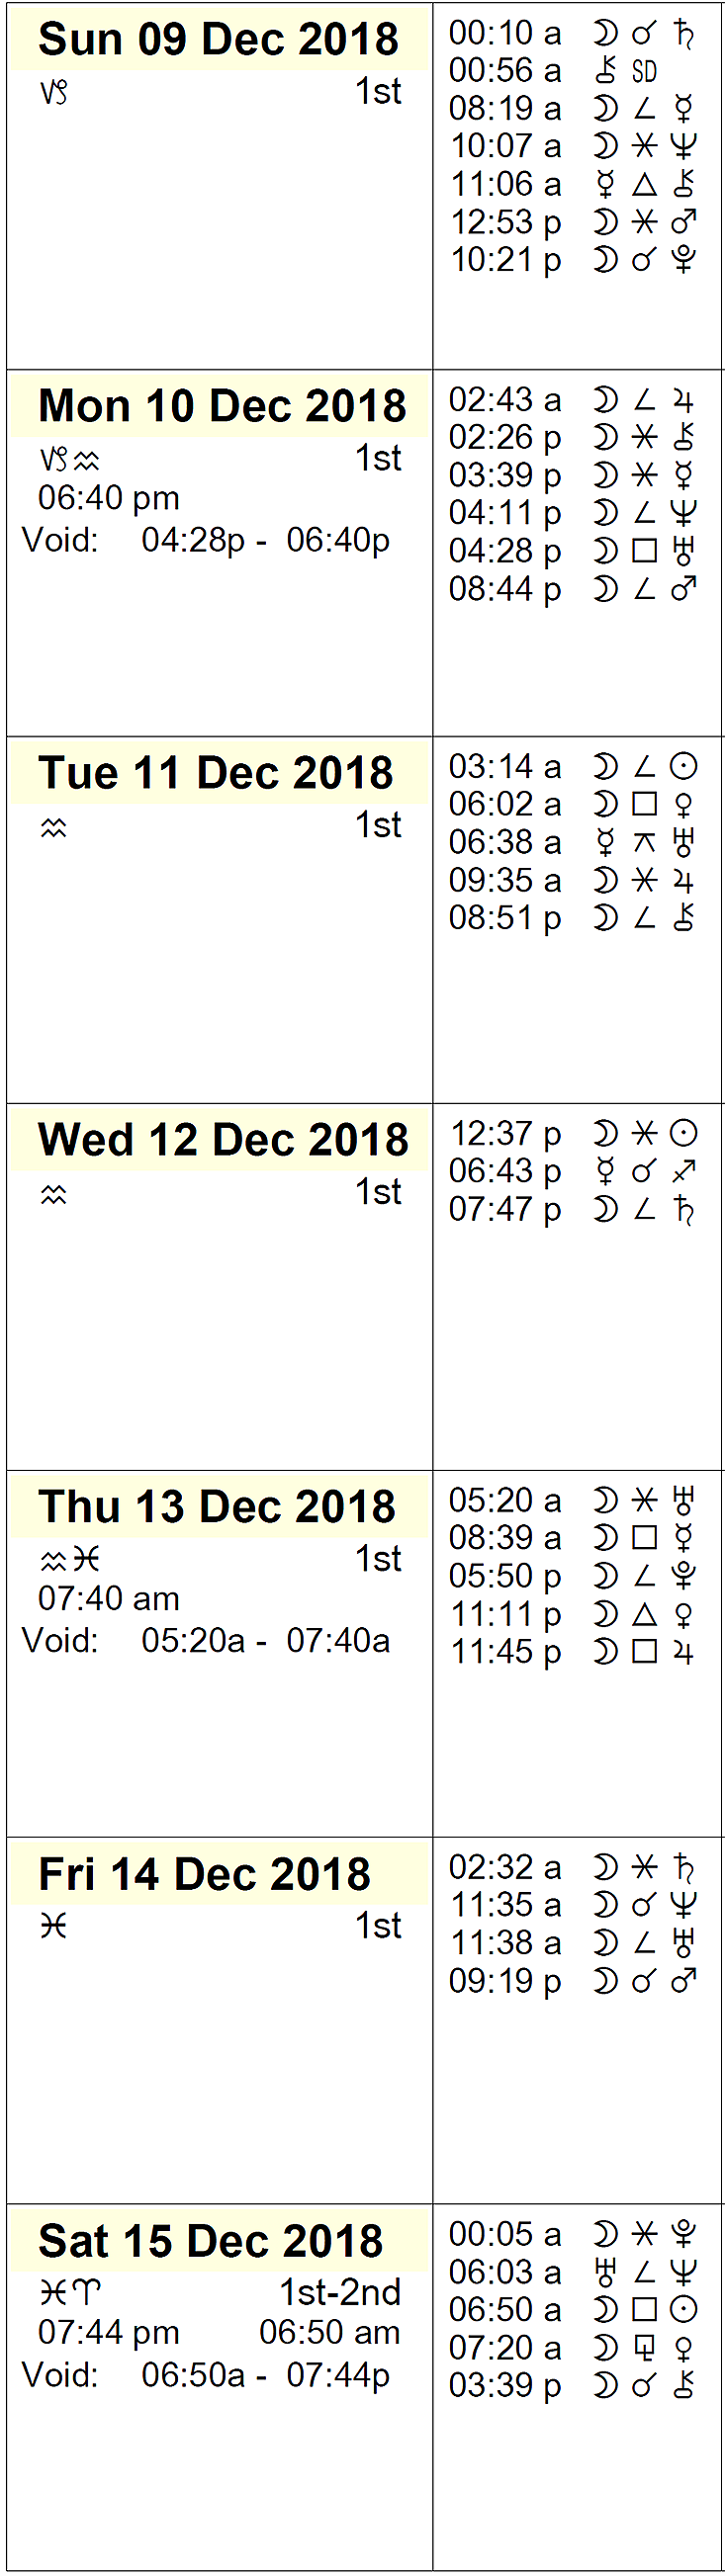 This Week in Astrology Calendar: December 9 to 15, 2018